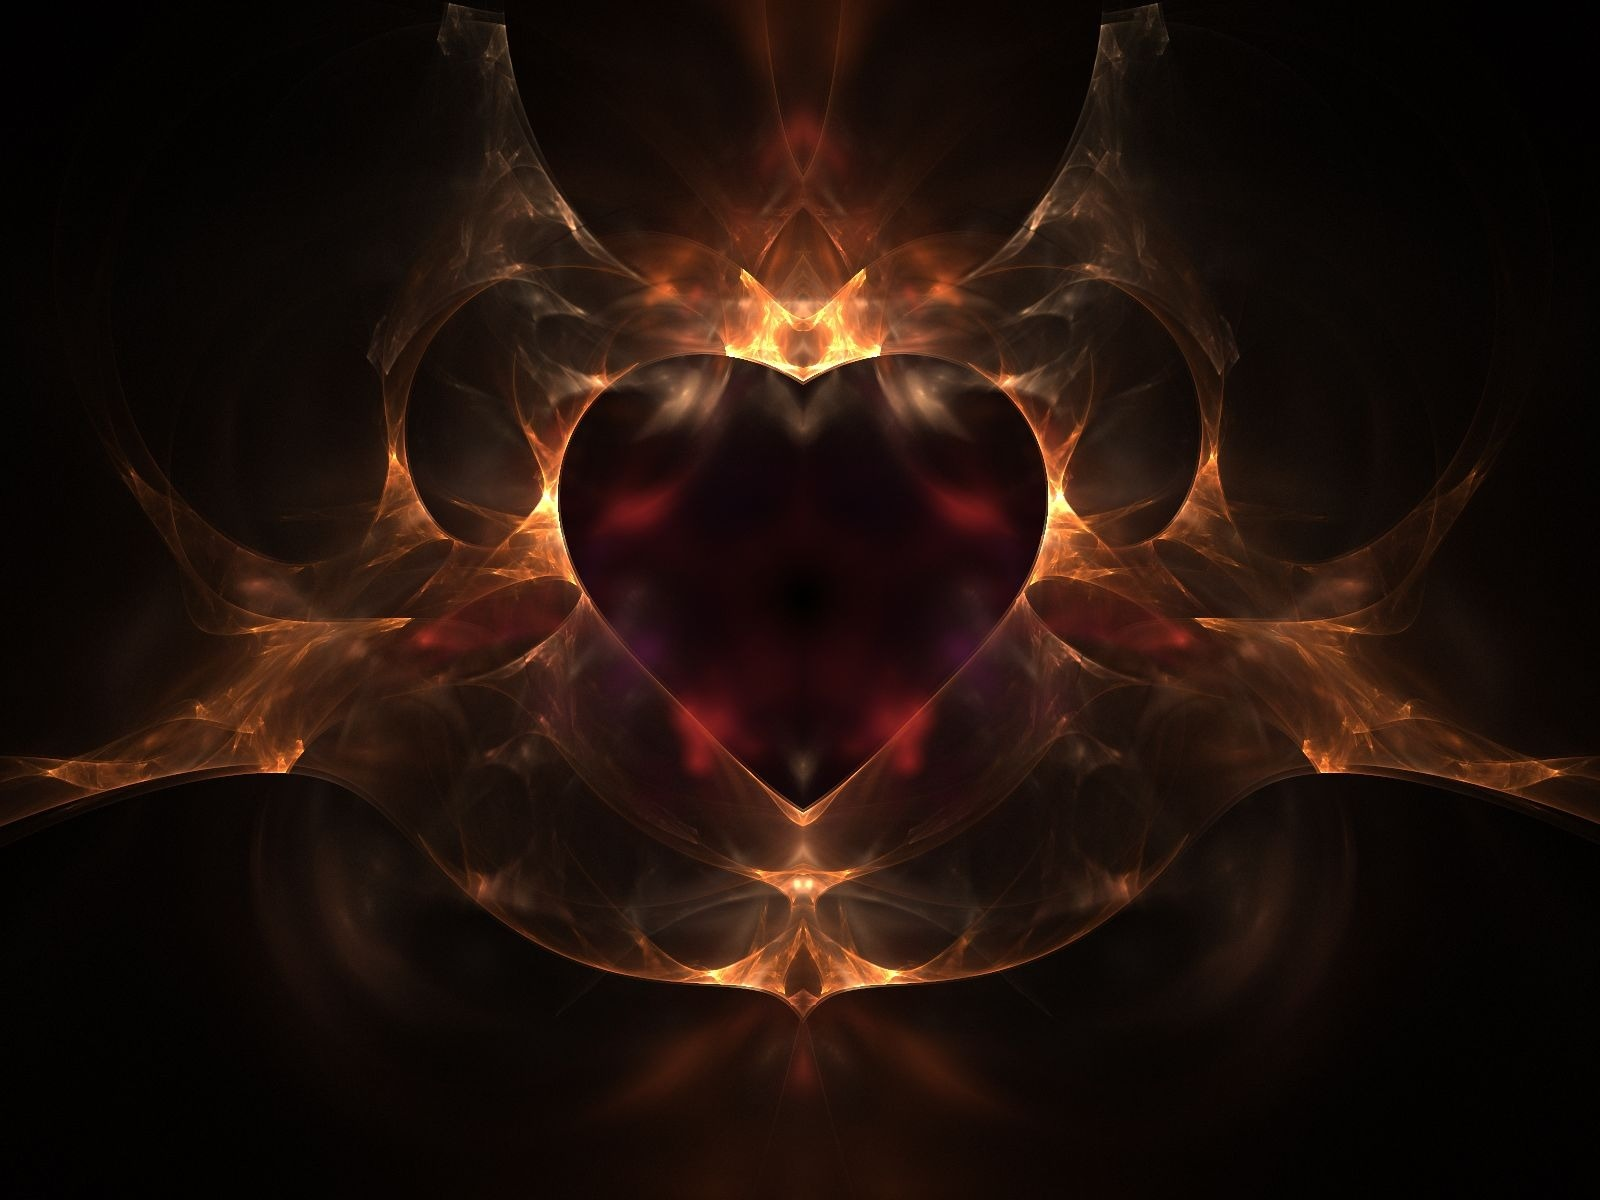 Fire heart wallpaper wallpapers for free download about (3,110